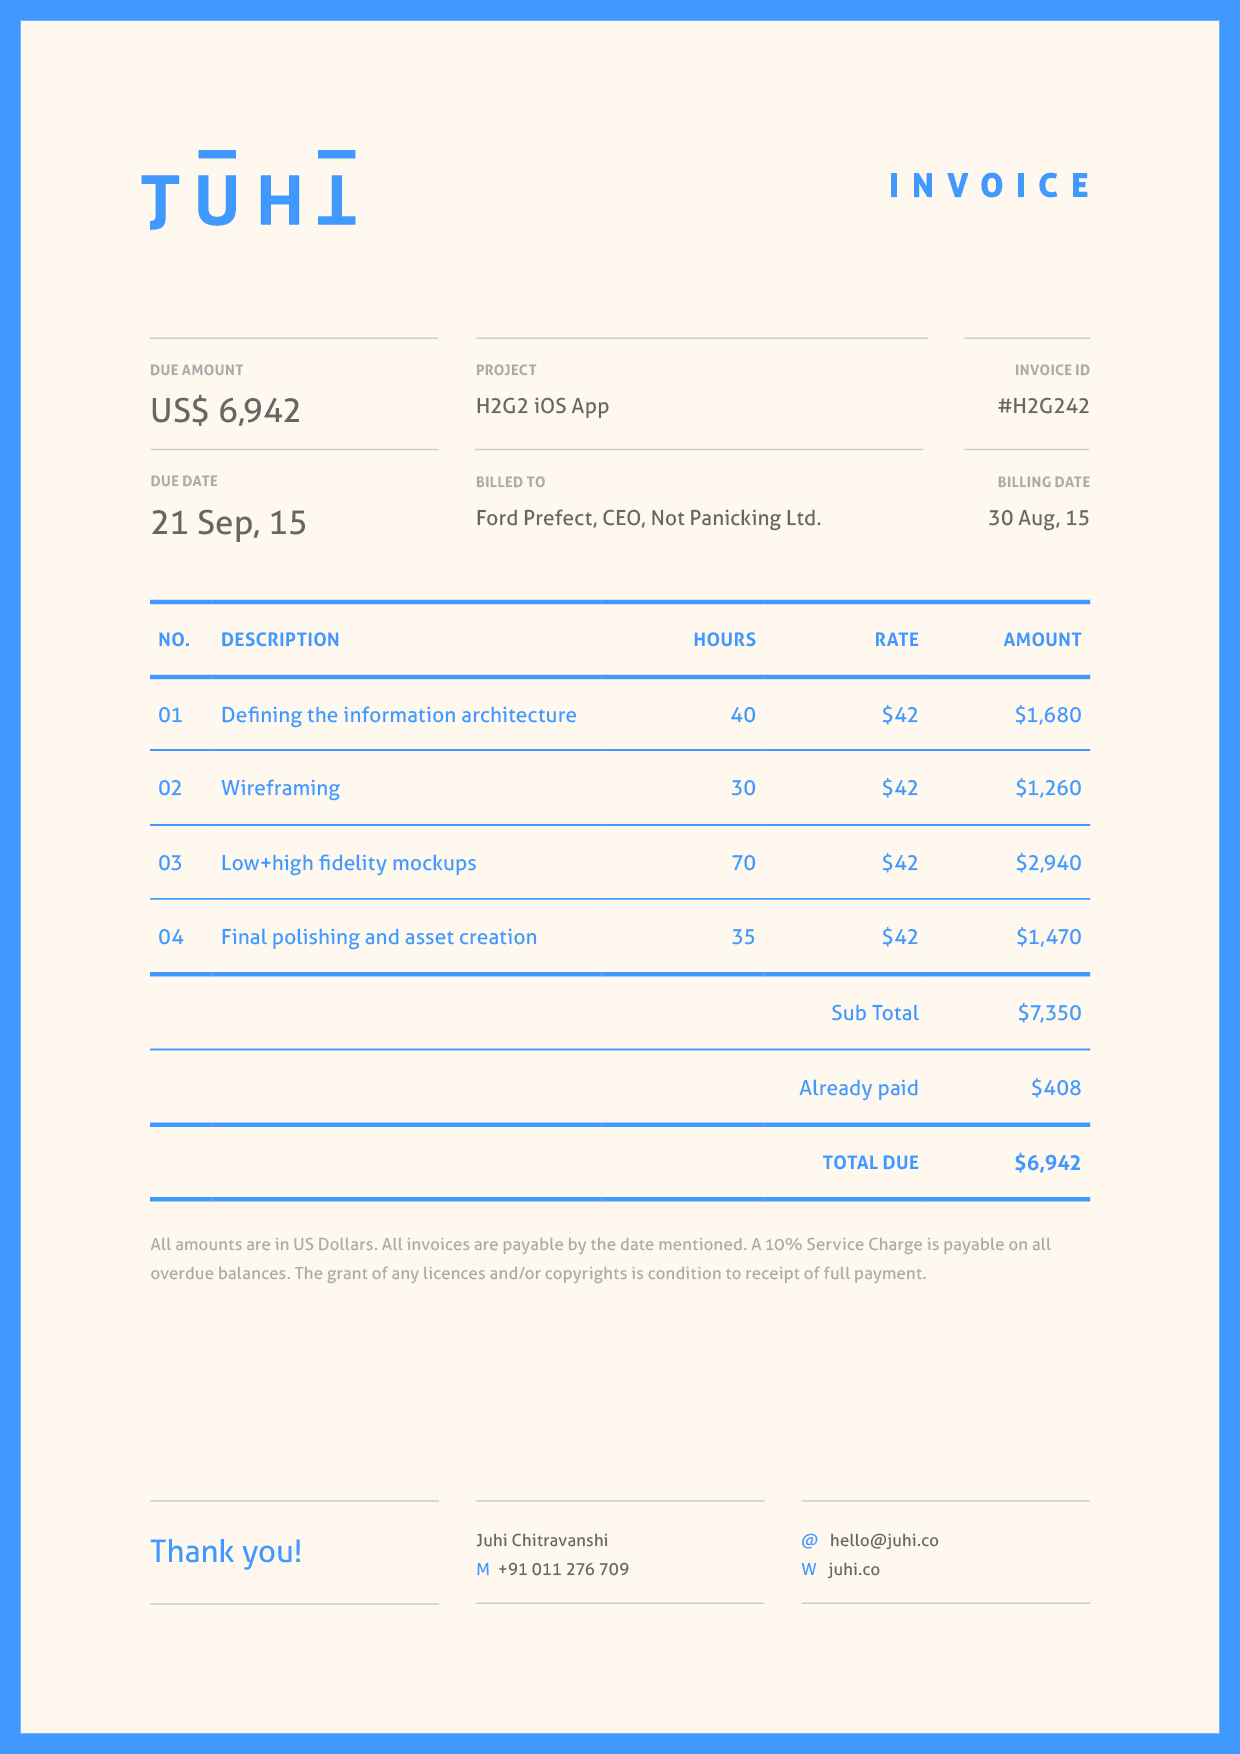 Aaaaeroincus  Wonderful Dont Hold Back On Your Invoice  Inspiring Designs  With Fascinating Invoice By Juhi Chitravanshi Follow With Astonishing Requesting Payment For Overdue Invoice Also Vintage Invoice In Addition Msrp Invoice Price Difference And Duplicate Invoice In Quickbooks As Well As Payment Invoice Template Additionally Handyman Invoice From Inspirationfeedcom With Aaaaeroincus  Fascinating Dont Hold Back On Your Invoice  Inspiring Designs  With Astonishing Invoice By Juhi Chitravanshi Follow And Wonderful Requesting Payment For Overdue Invoice Also Vintage Invoice In Addition Msrp Invoice Price Difference From Inspirationfeedcom